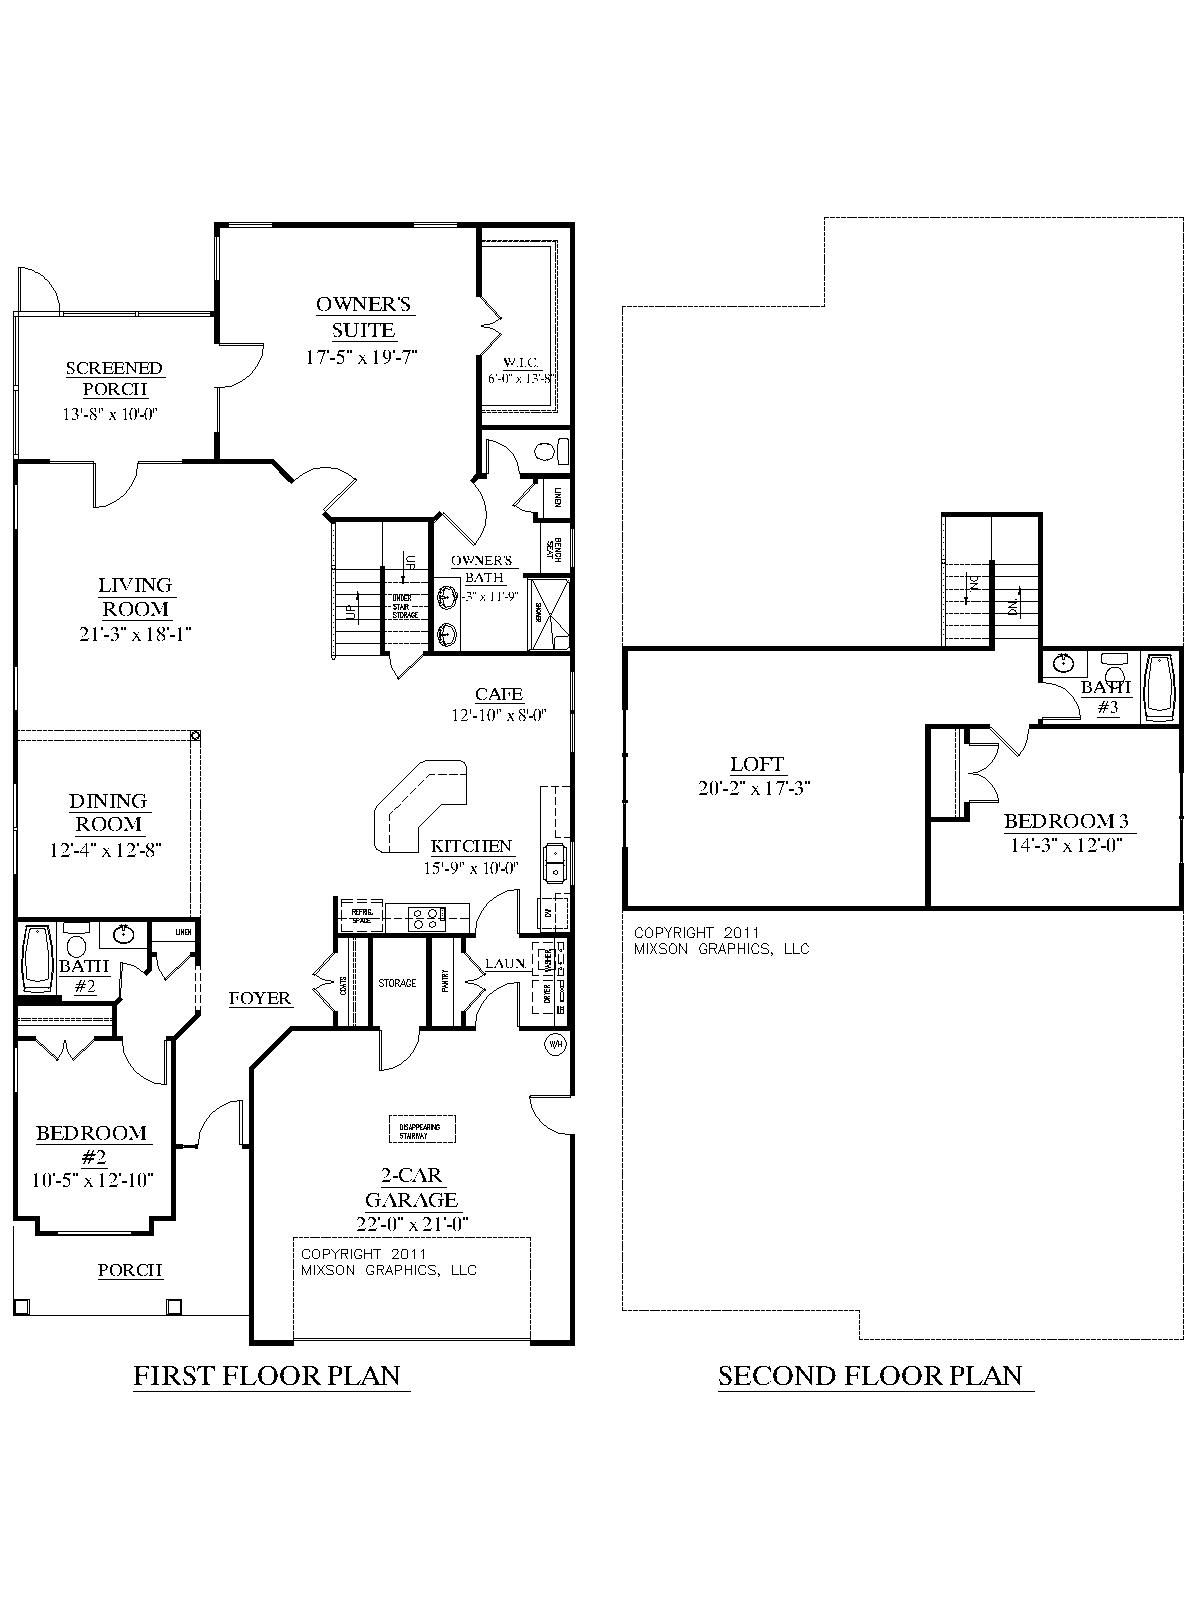 House plan 2755 woodbridge floor plan traditional 1 1 2 for Beach house designs living upstairs